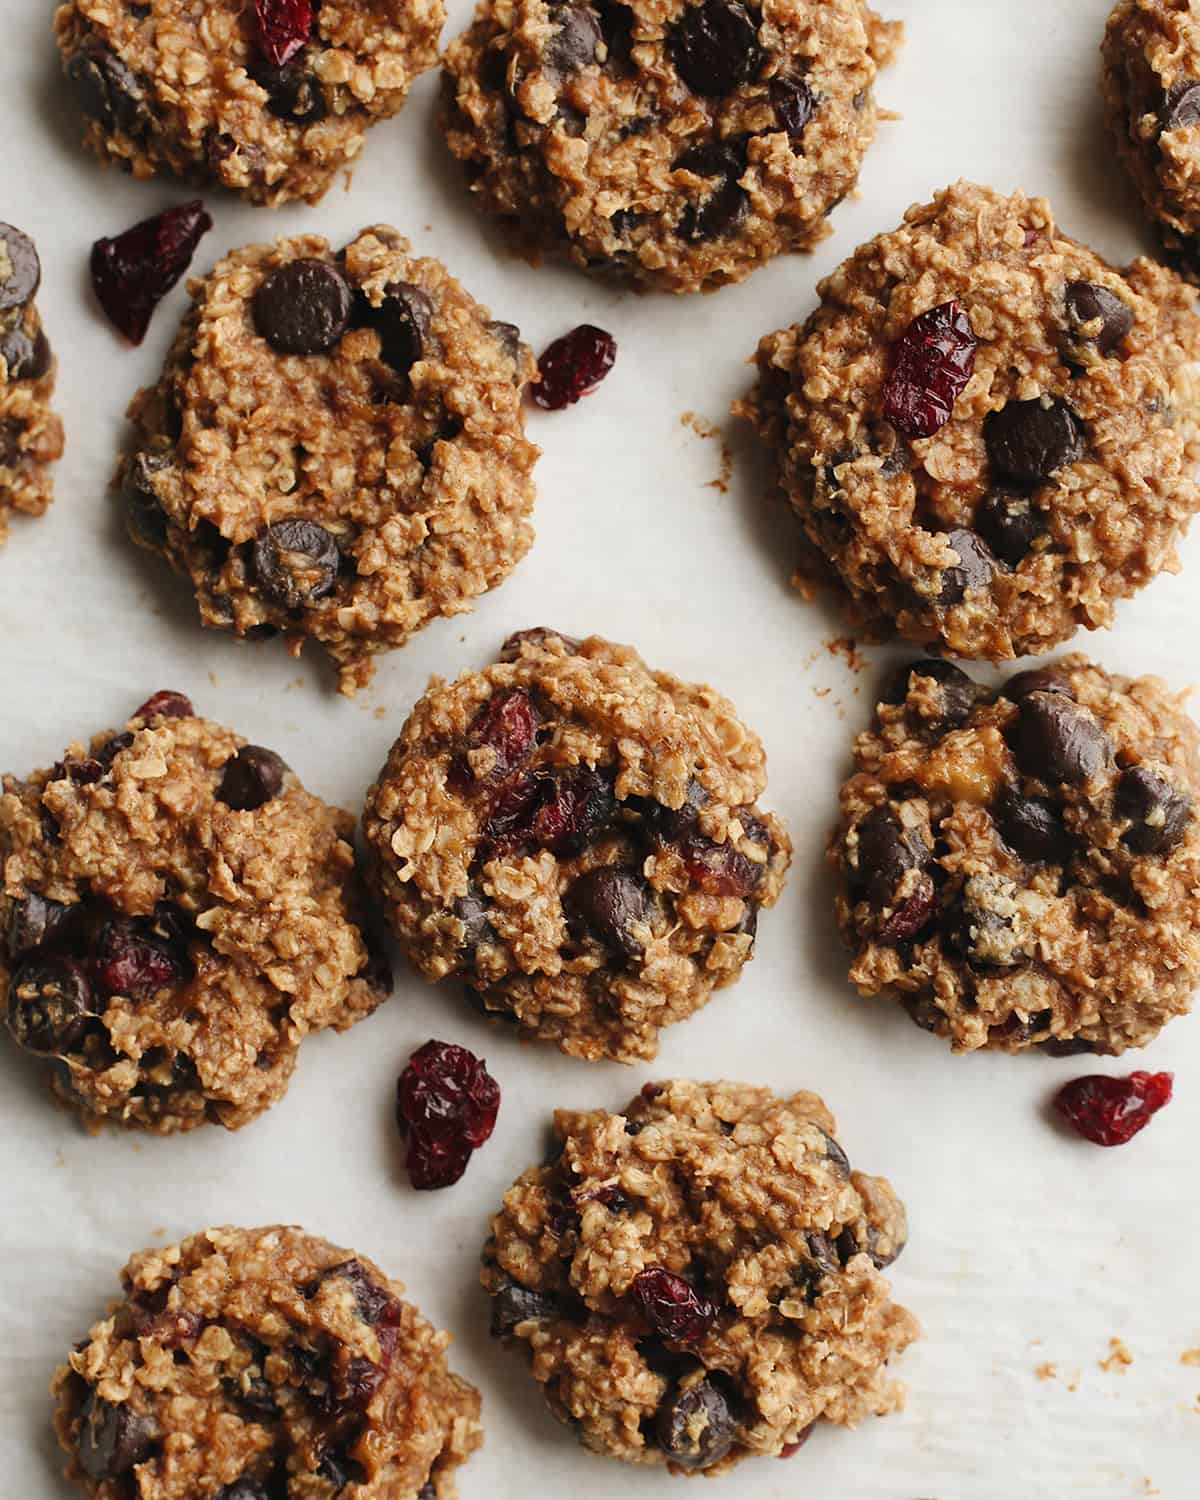 overhead photo of 9 Peanut Butter Banana Cookies with chocolate chips and dried cranberries